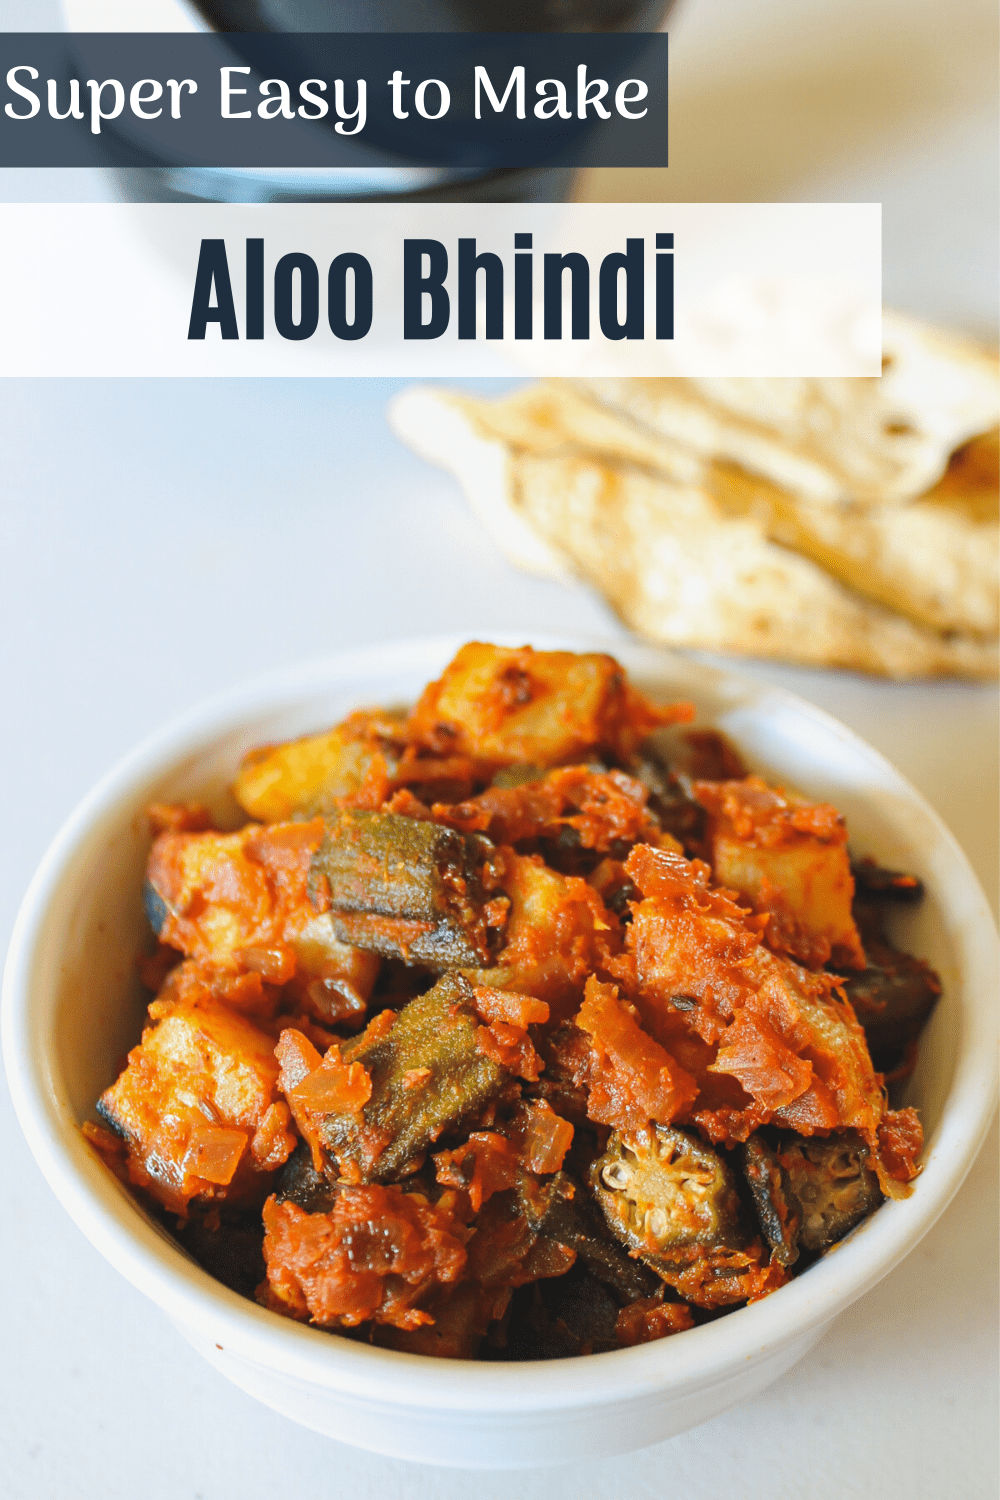 Aloo bhindi served in a bowl with text on the image for pinterest.